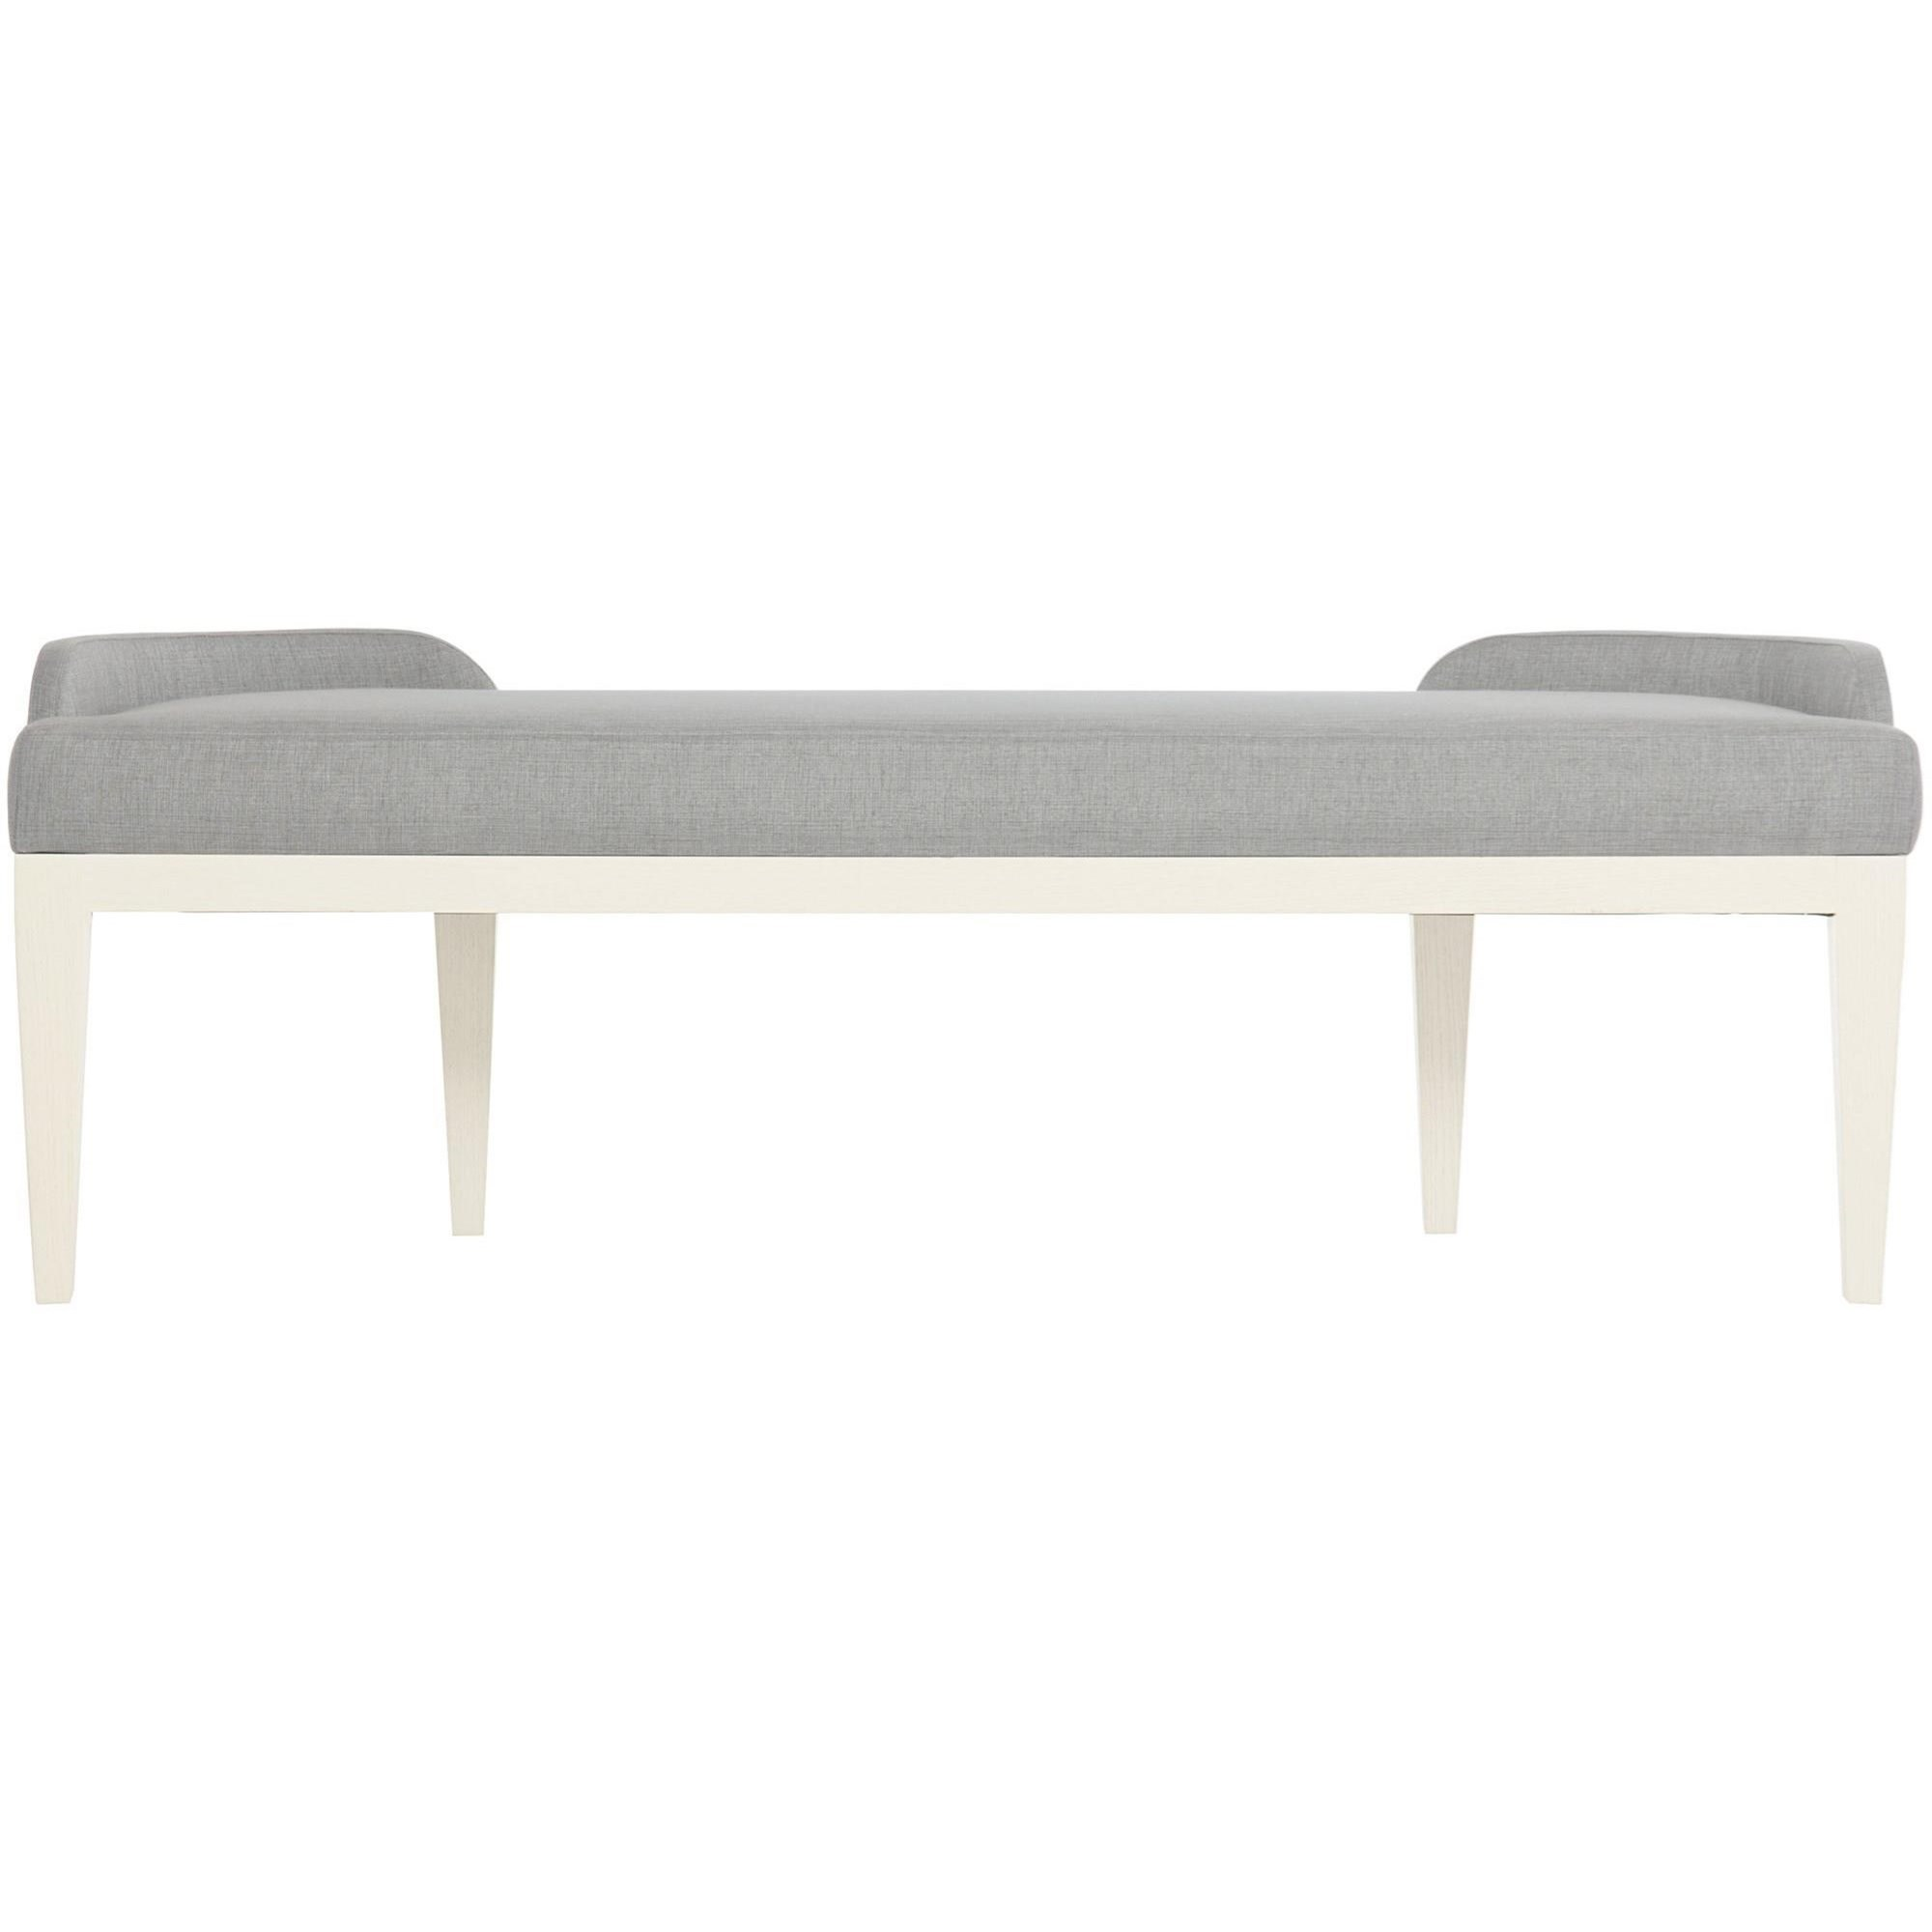 Calista Bench by Bernhardt at Baer's Furniture